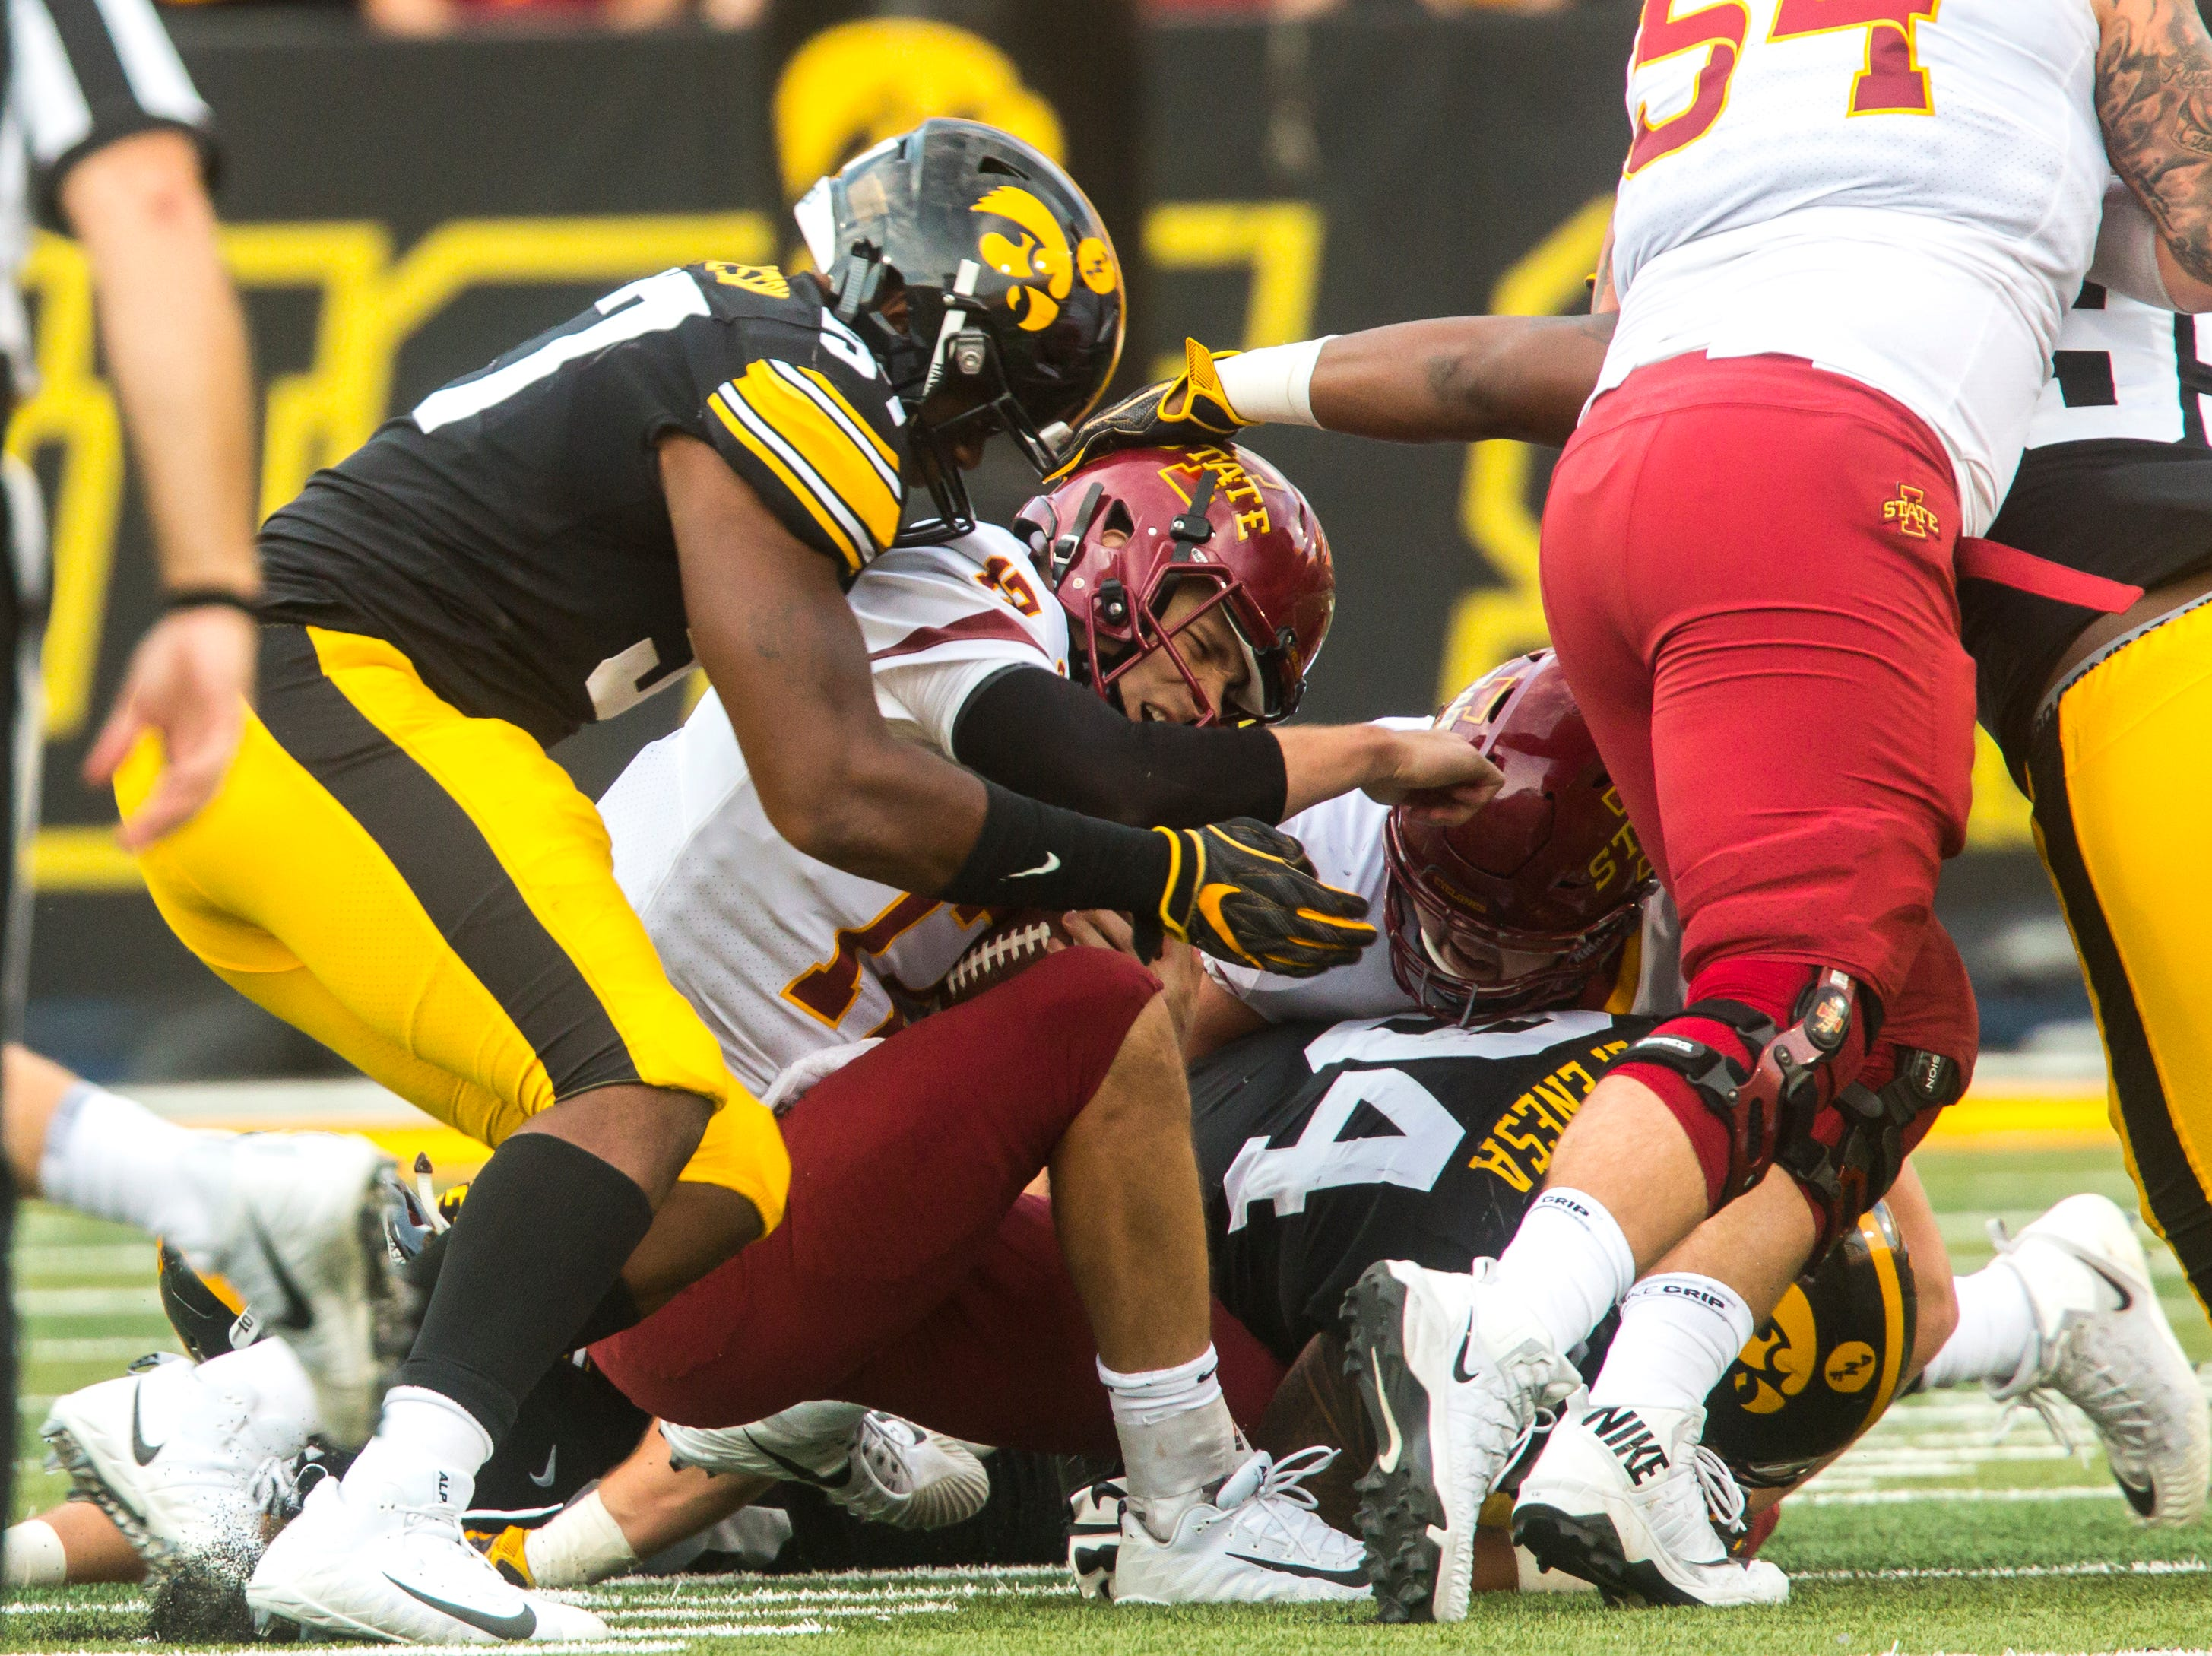 Iowa State quarterback Kyle Kempt (17) gets sacked by Iowa defensive end Chauncey Golston (57) and defensive end A.J. Epenesa (94) during the Cy-Hawk NCAA football game on Saturday, Sept. 8, 2018, at Kinnick Stadium in Iowa City.